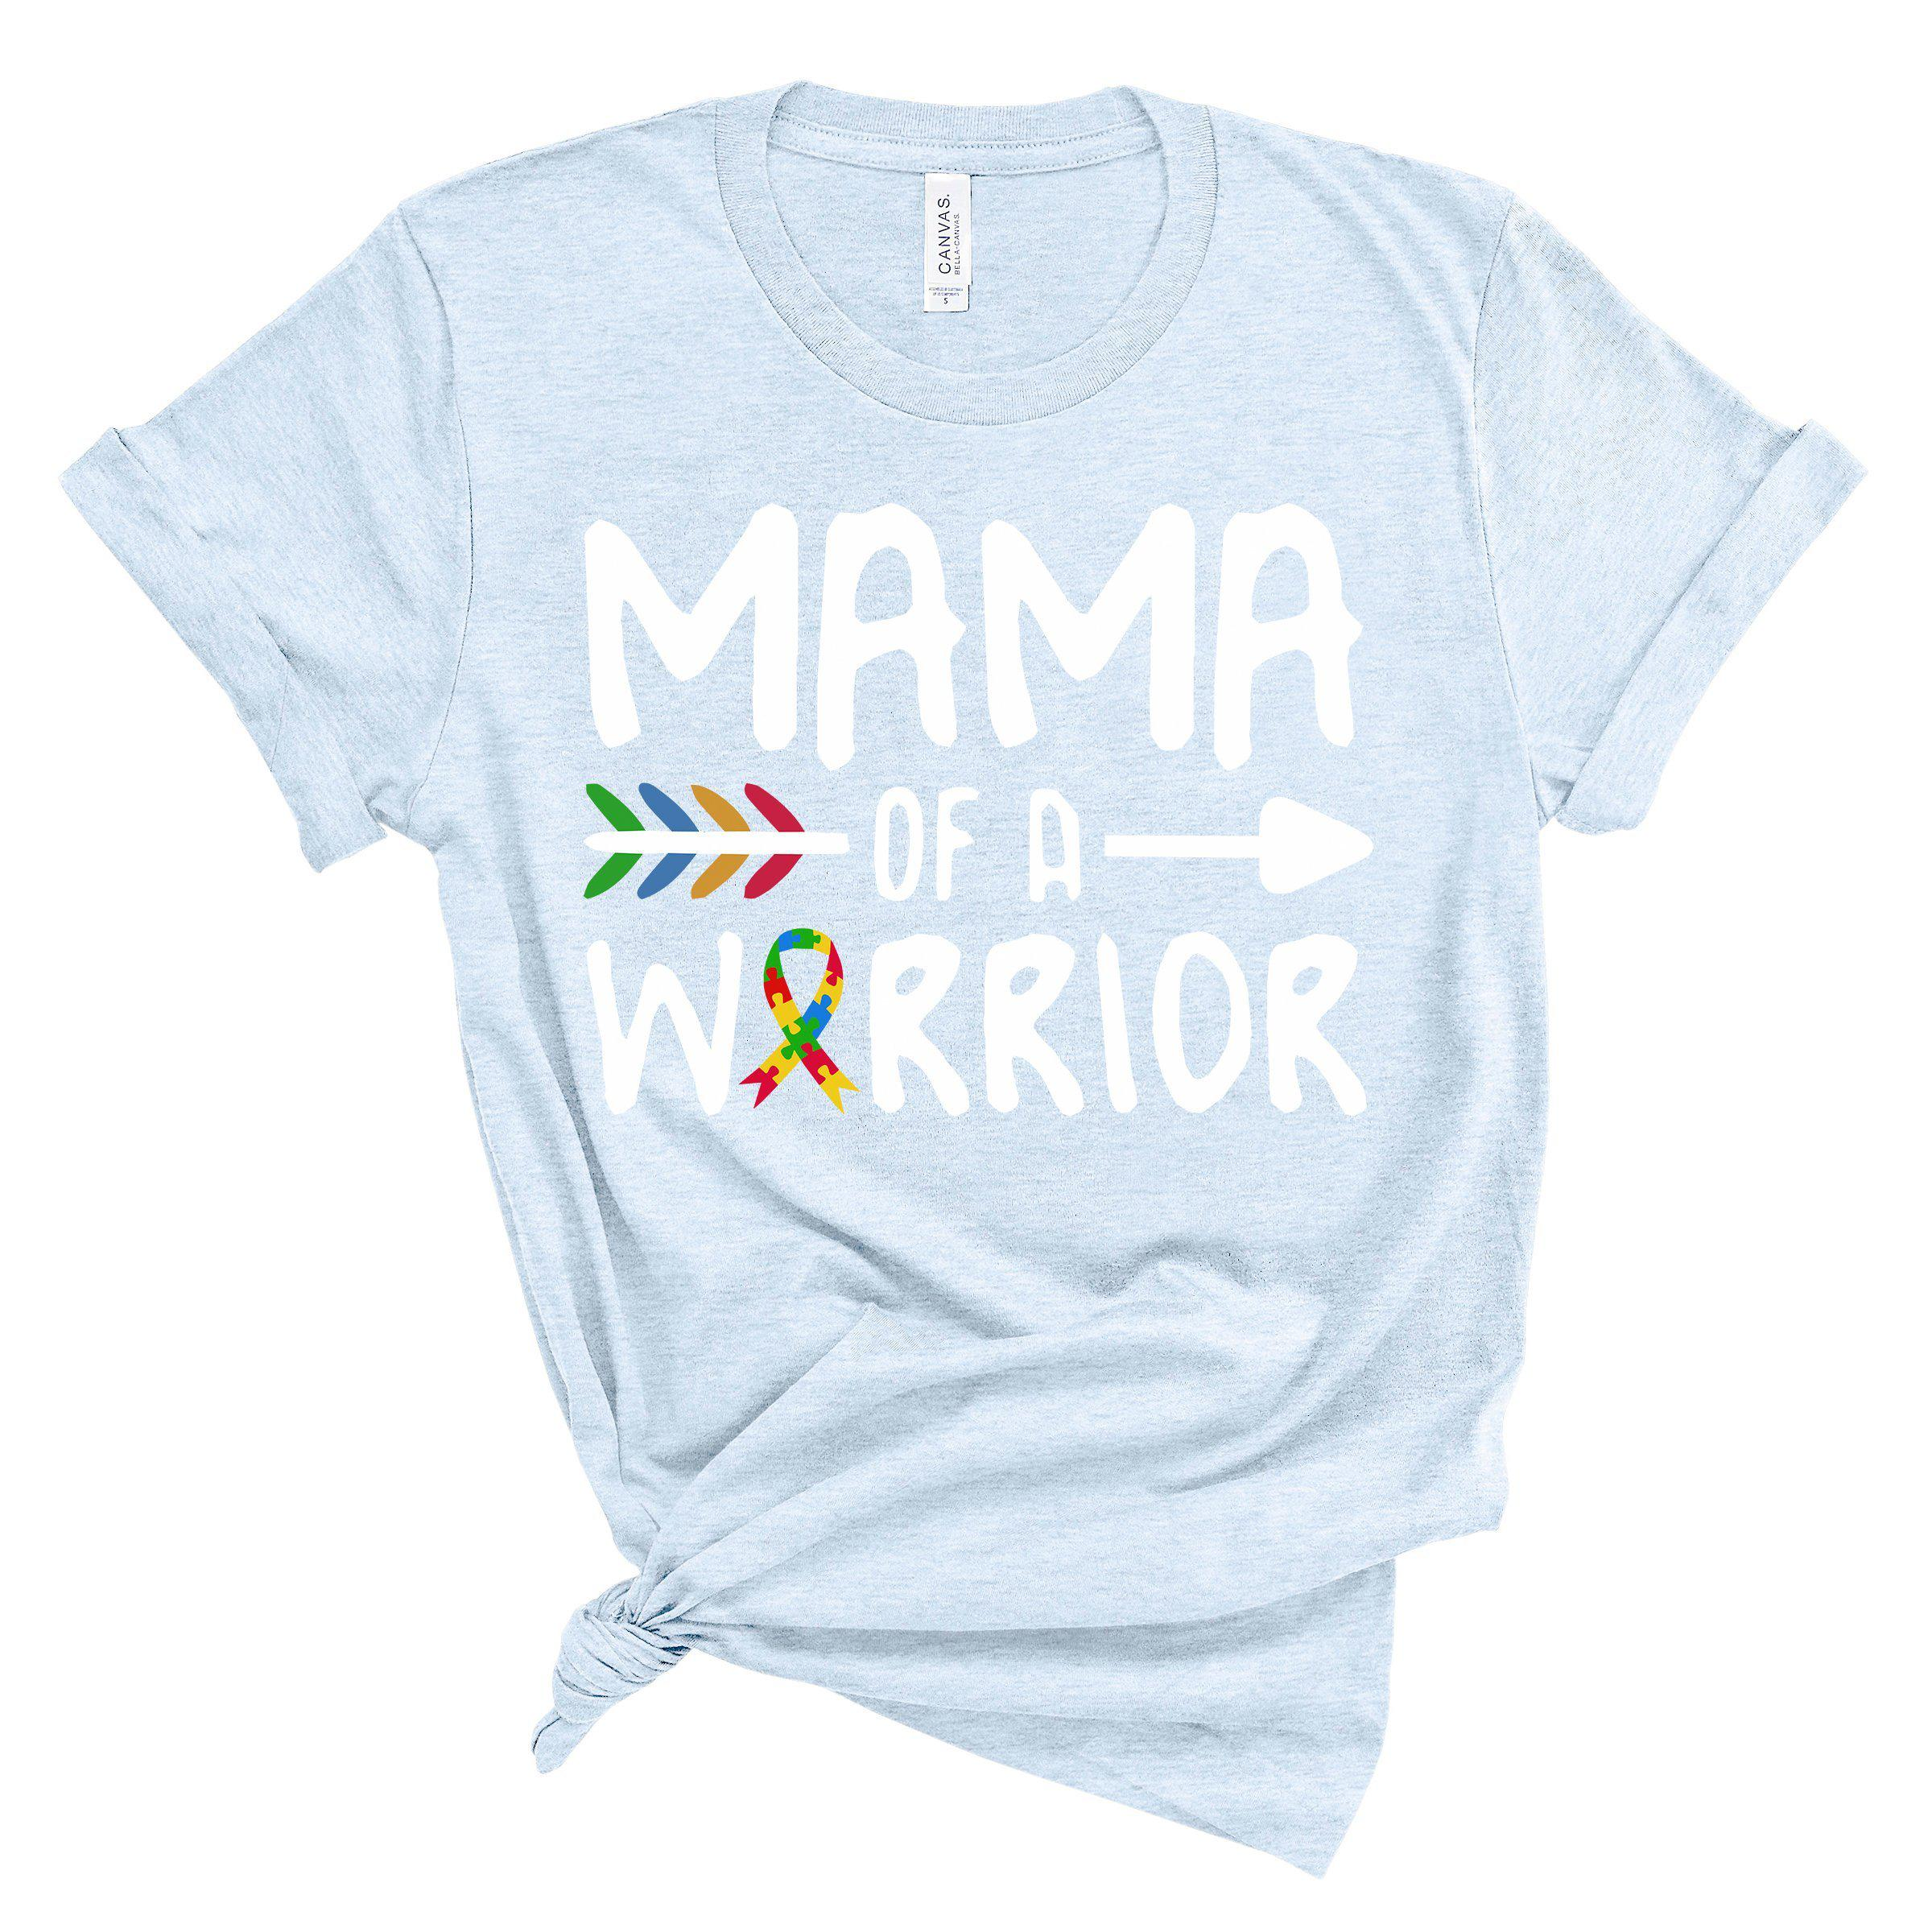 (Soft Unisex BC 3001) Mama of a Warrior (Autism Awareness) White Graphic T-Shirt Tee BOXELS